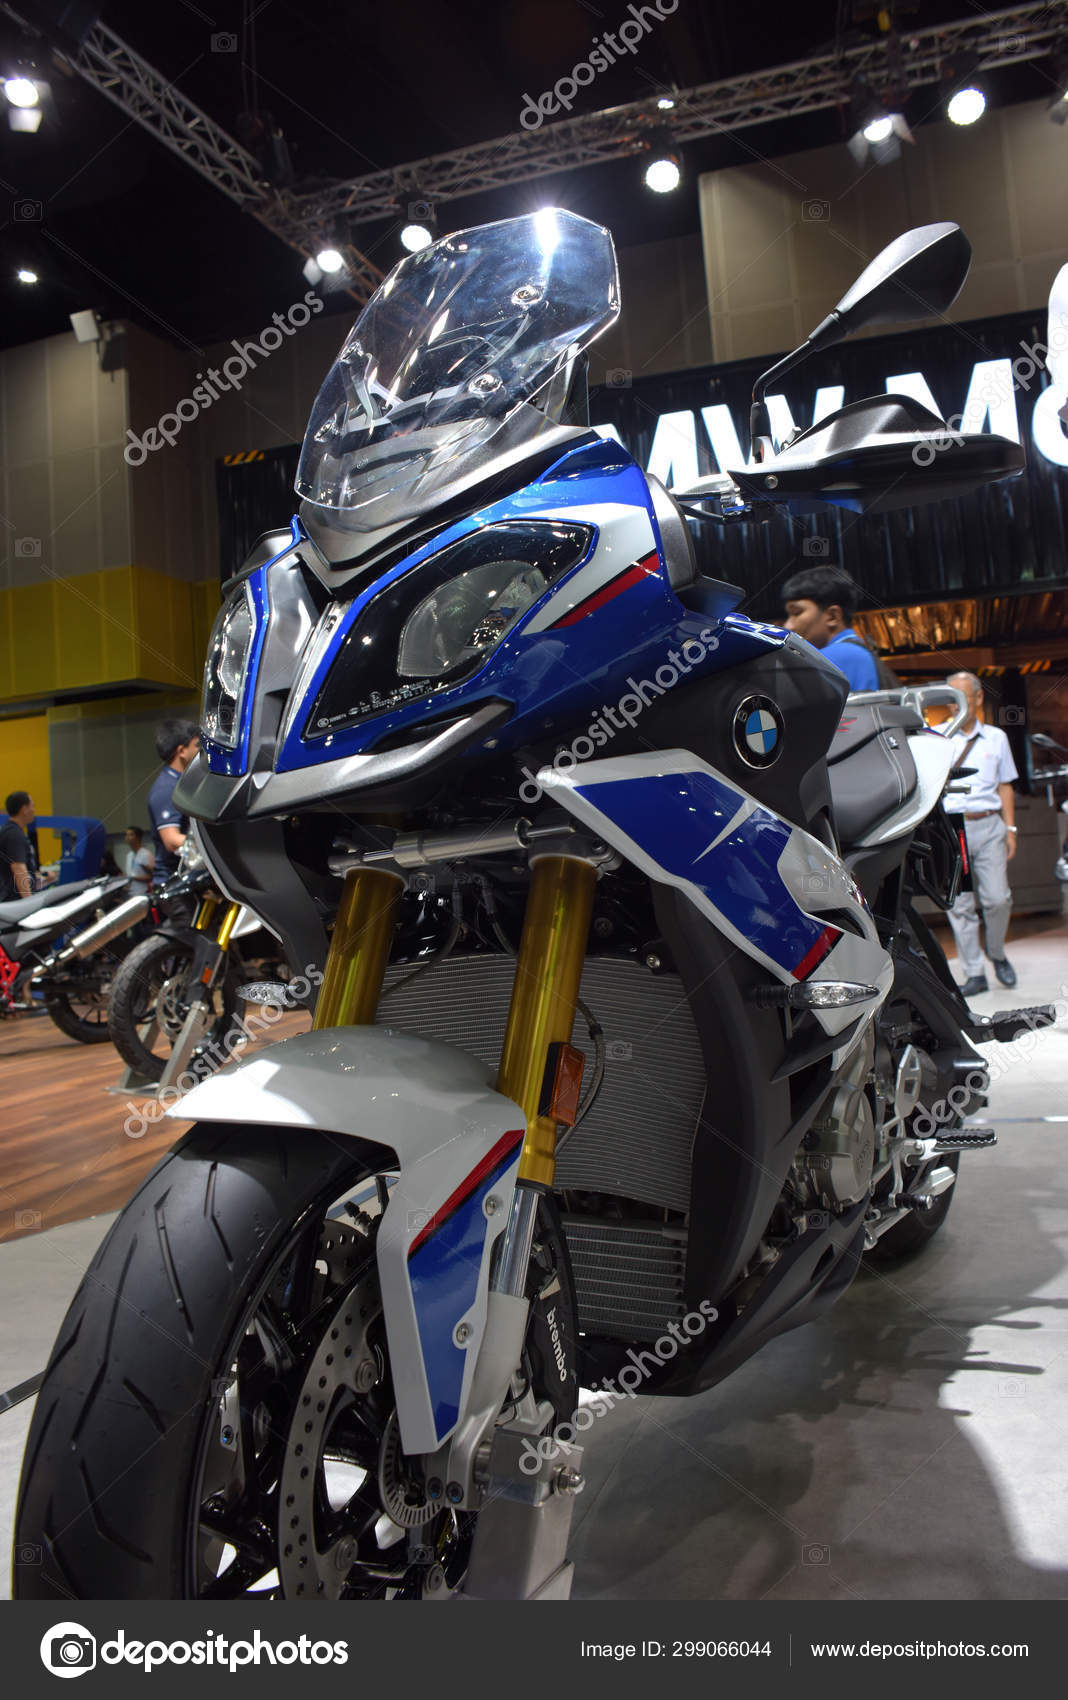 Trade Motorcycle For Car >> Car Brand Related Items Come Out Trade Shows Big Motor